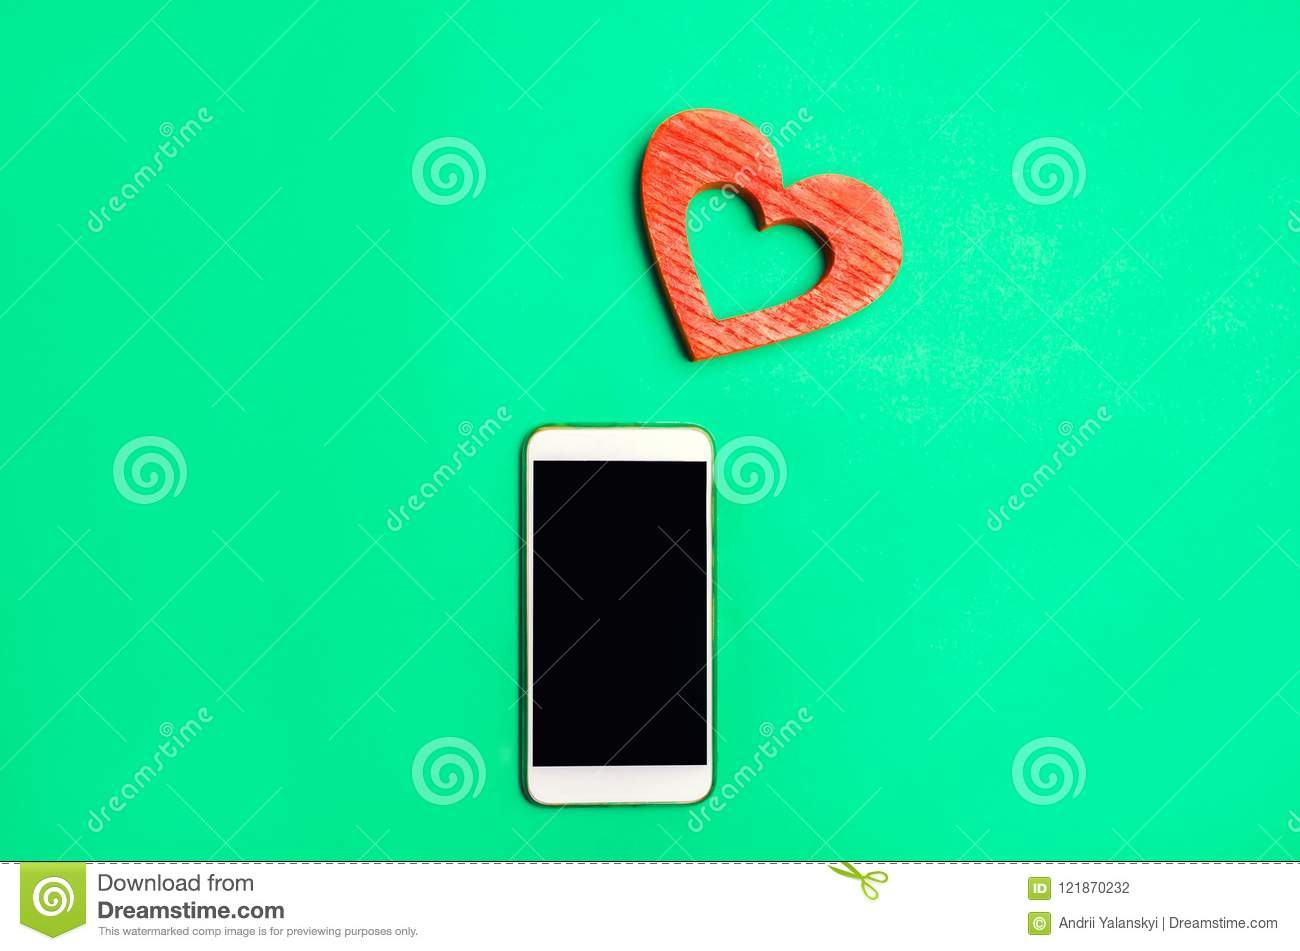 Dependence on social networks. phone smartphone and heart on a green background. online dating, flirting, message and calling your